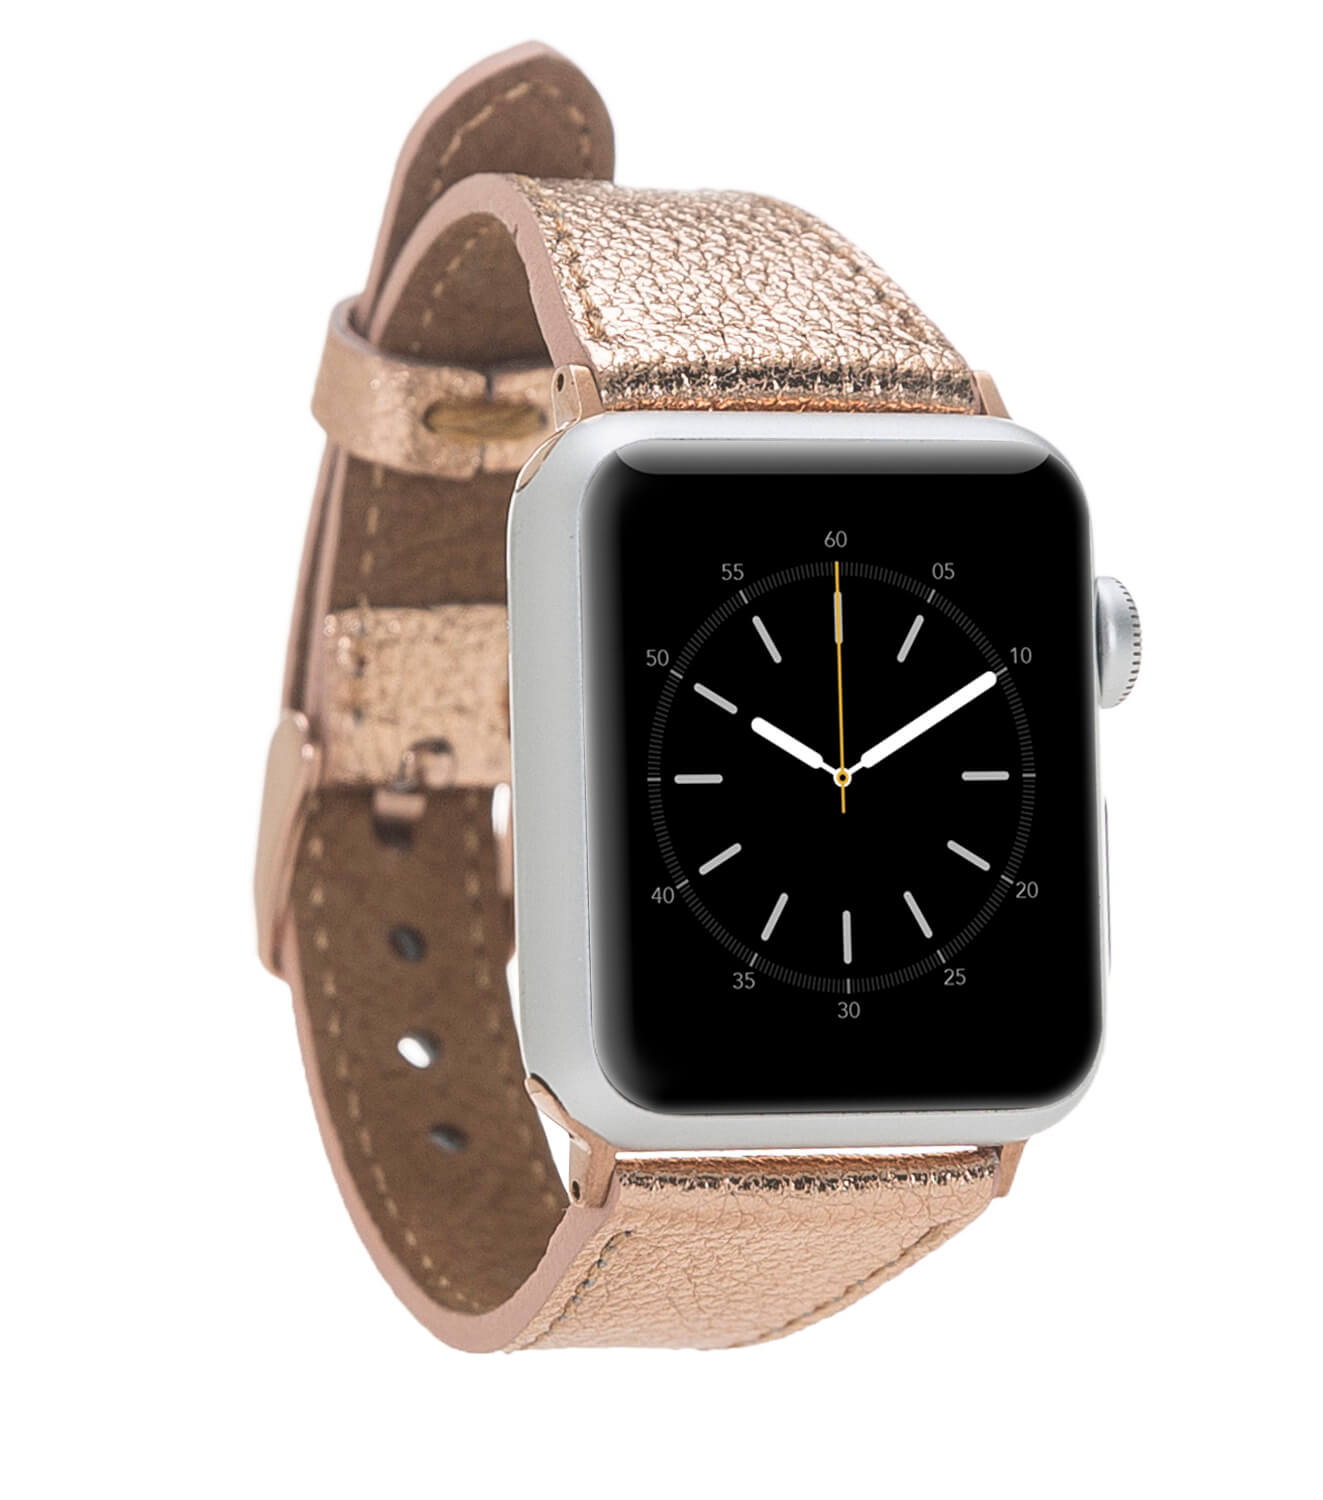 Lederarmband Lady für das Apple Watch Series 1-4 in 38/40mm Rosegold + Rose Connector